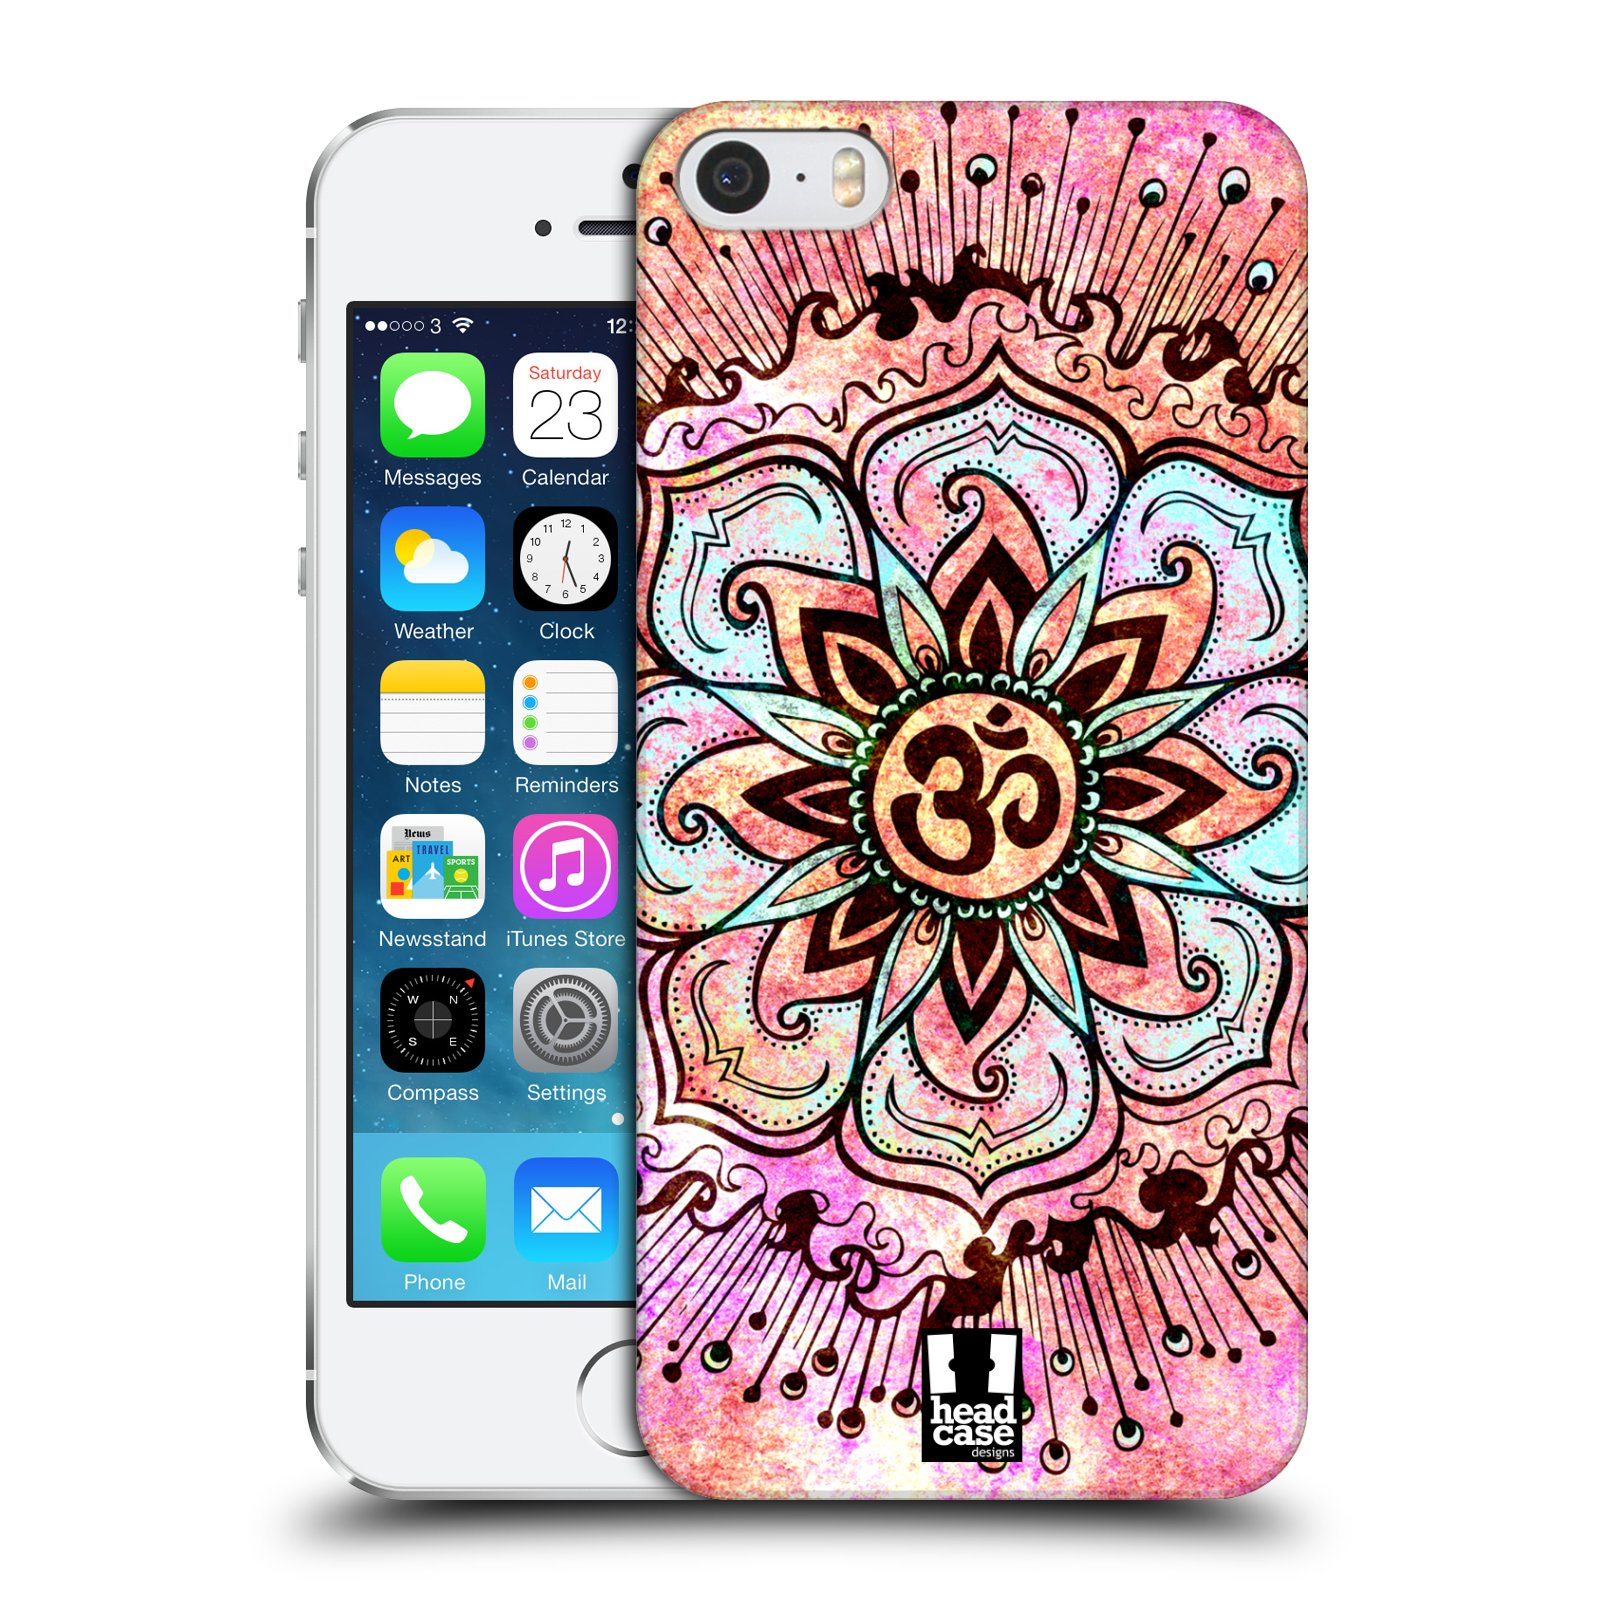 HEAD CASE DESIGNS OM CASE COVER FOR APPLE iPHONE 5 5S